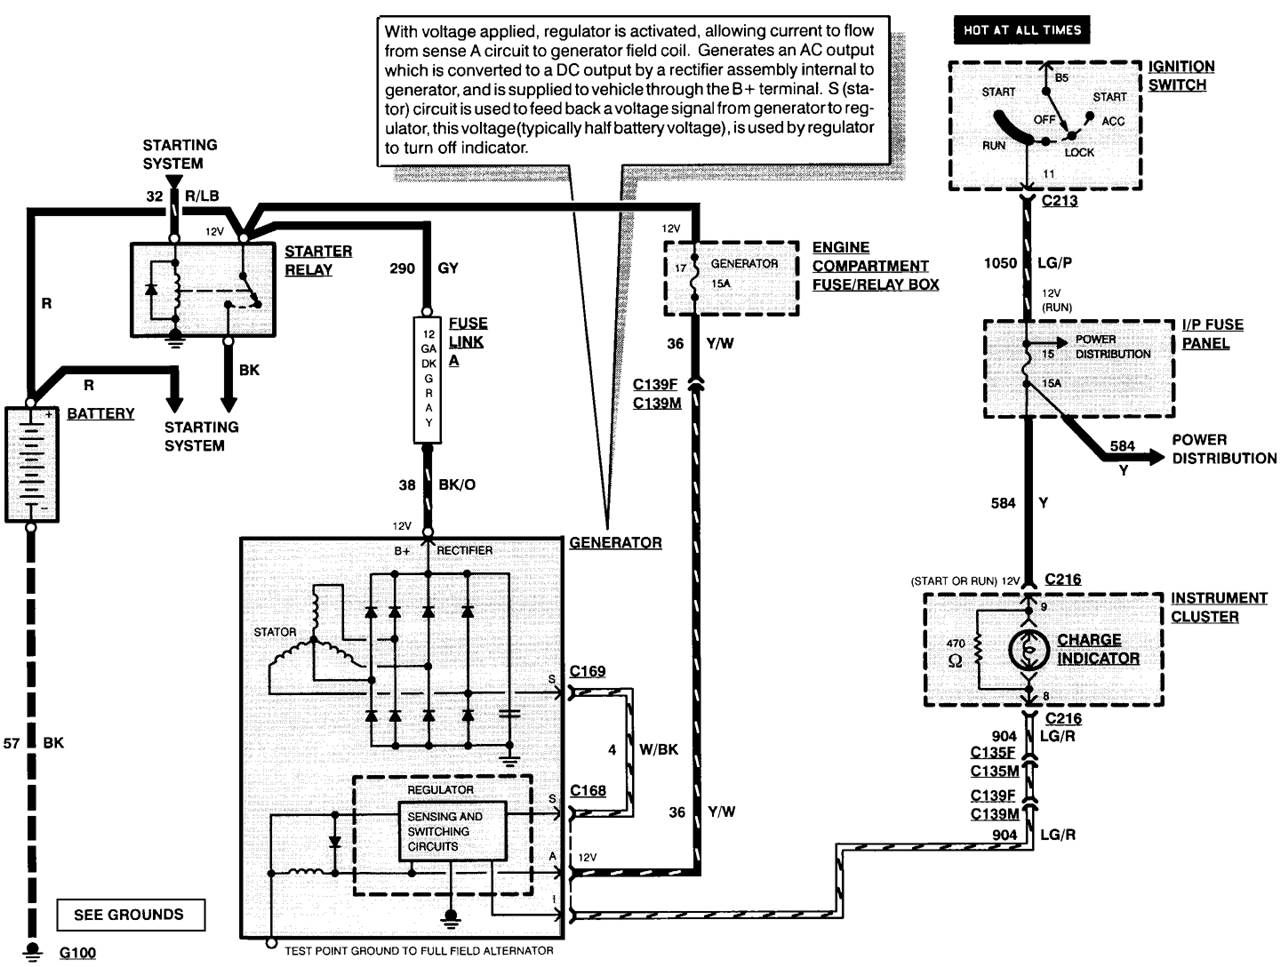 alternator wiring schematic alternator image ford alternator wiring diagrams carsut understand cars and on alternator wiring schematic